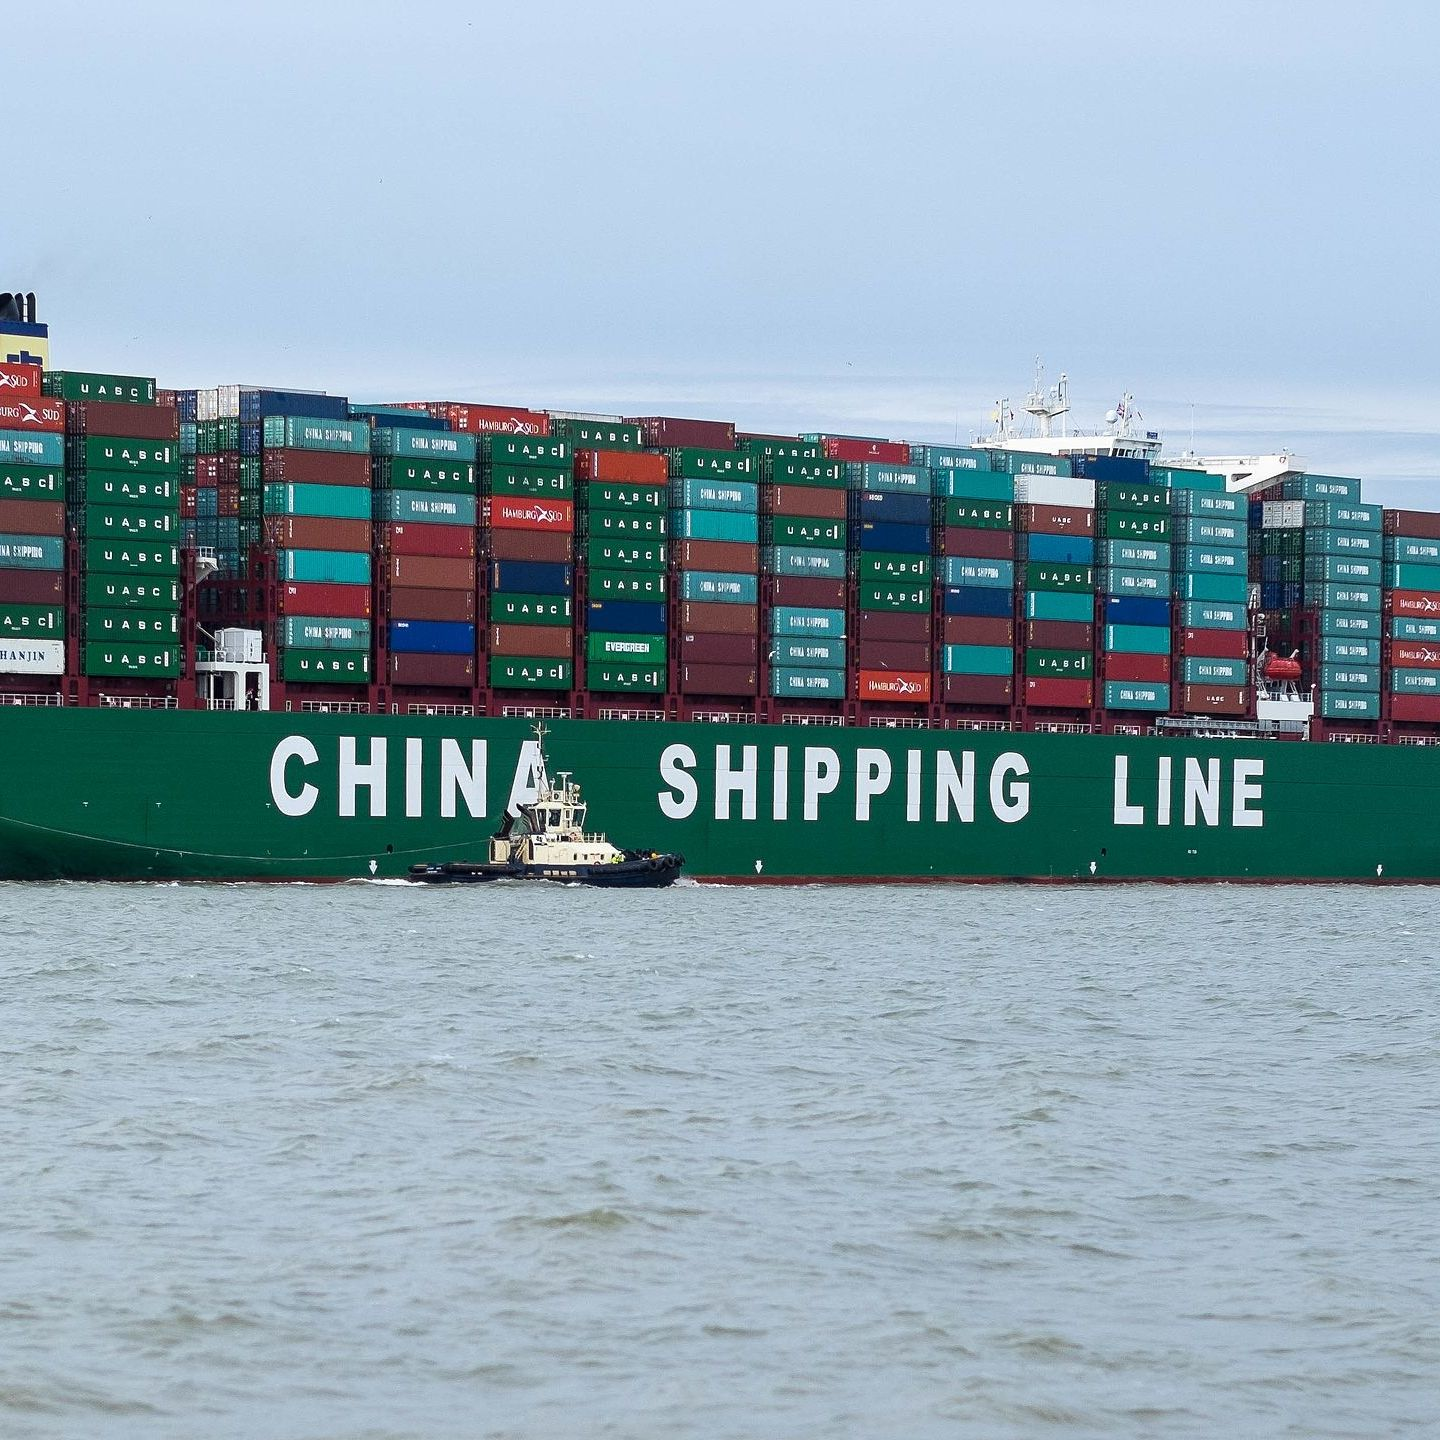 A ship owned by China Shipping Container Lines arriving in Felixstowe, England.